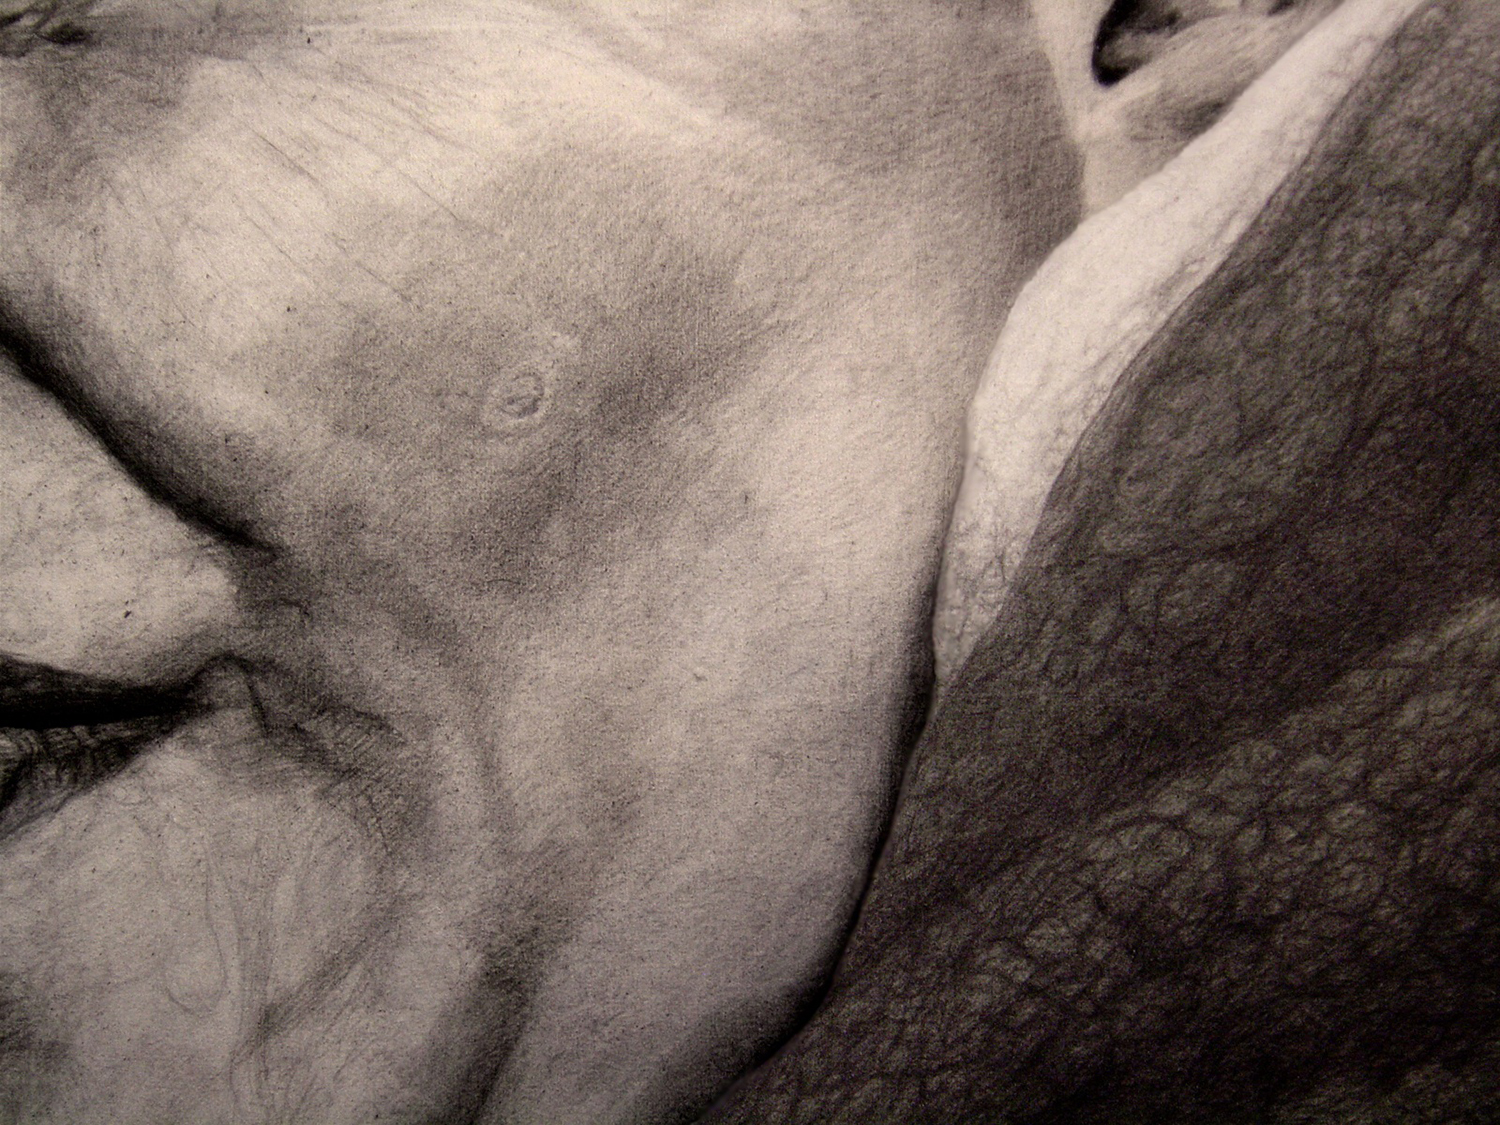 Detail - 6ft x 4ft - pencil on canvas. Private collection.